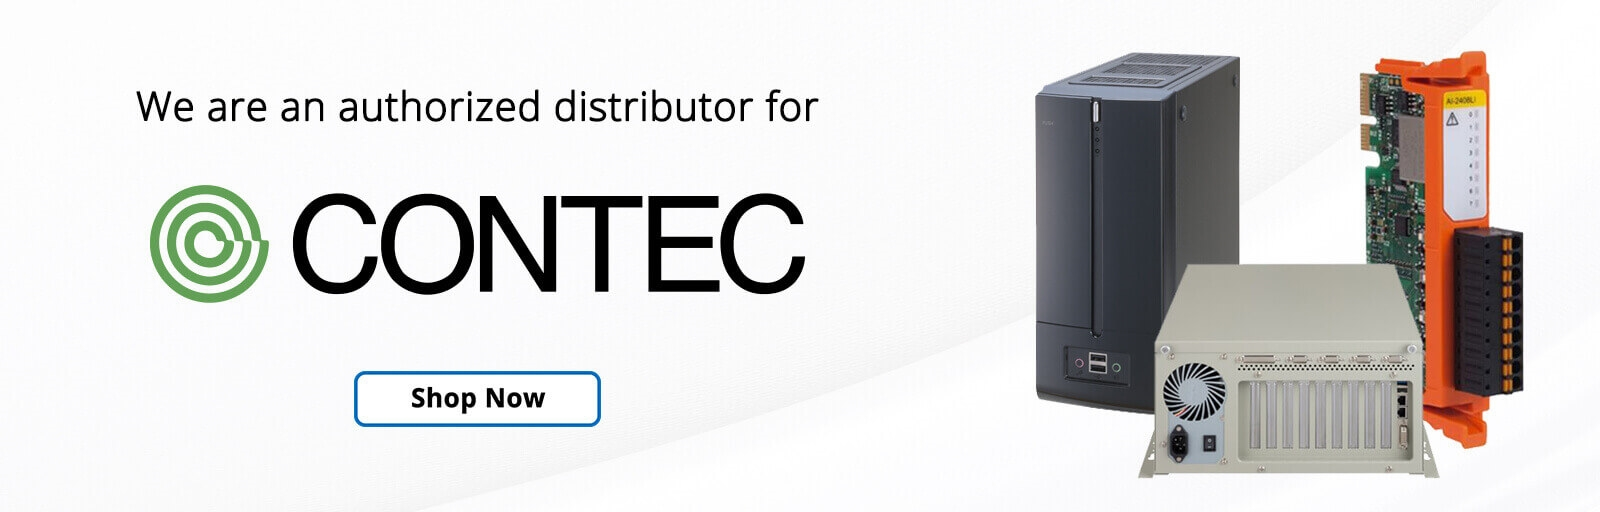 Radwell is an authorized distributor for Contec